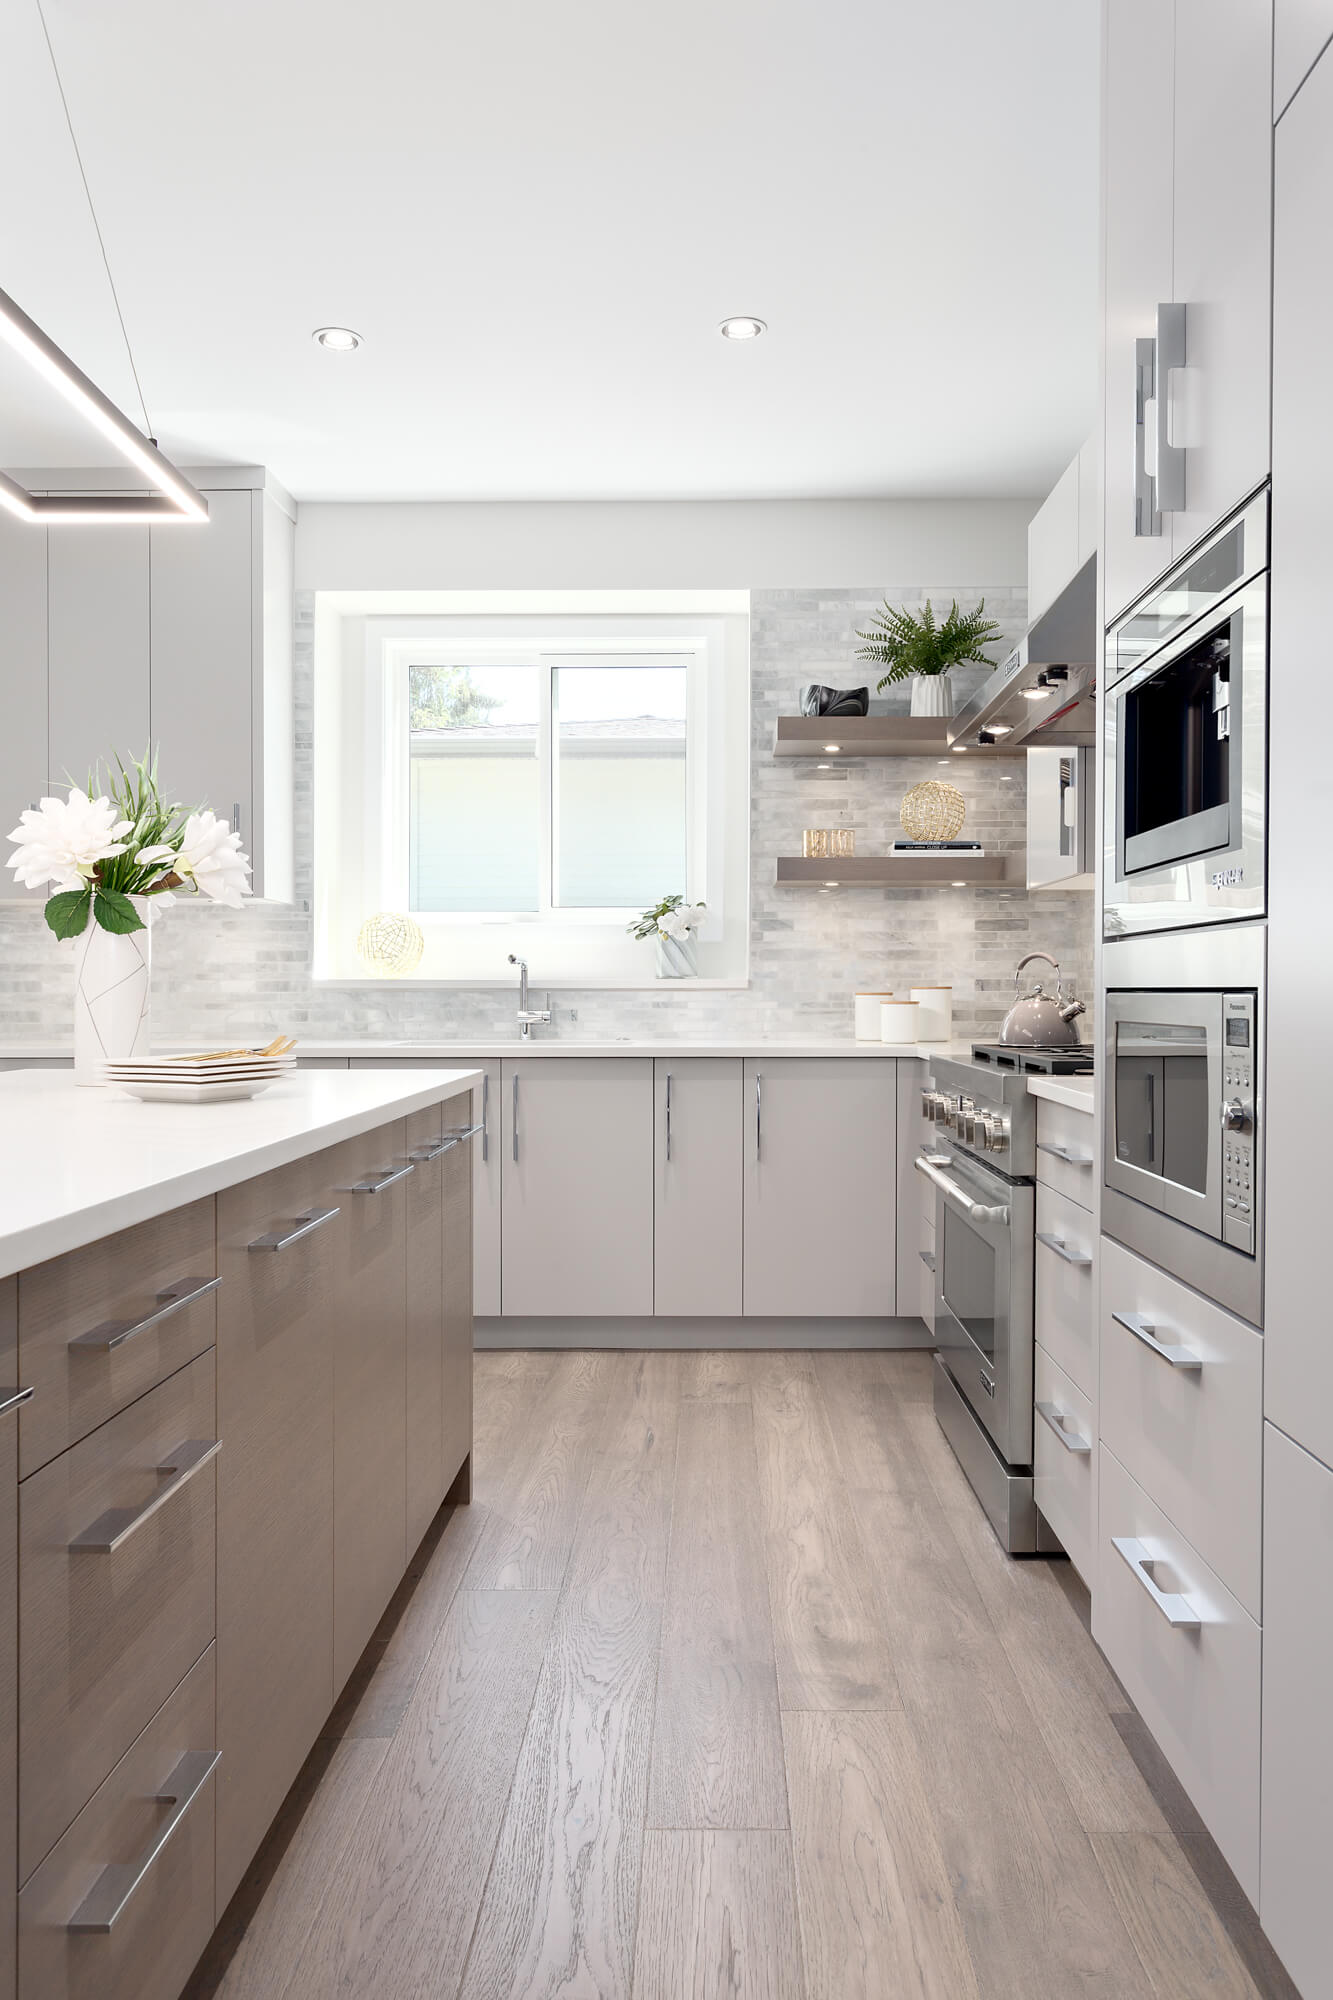 Custom Cabinetry with Built in Microwave